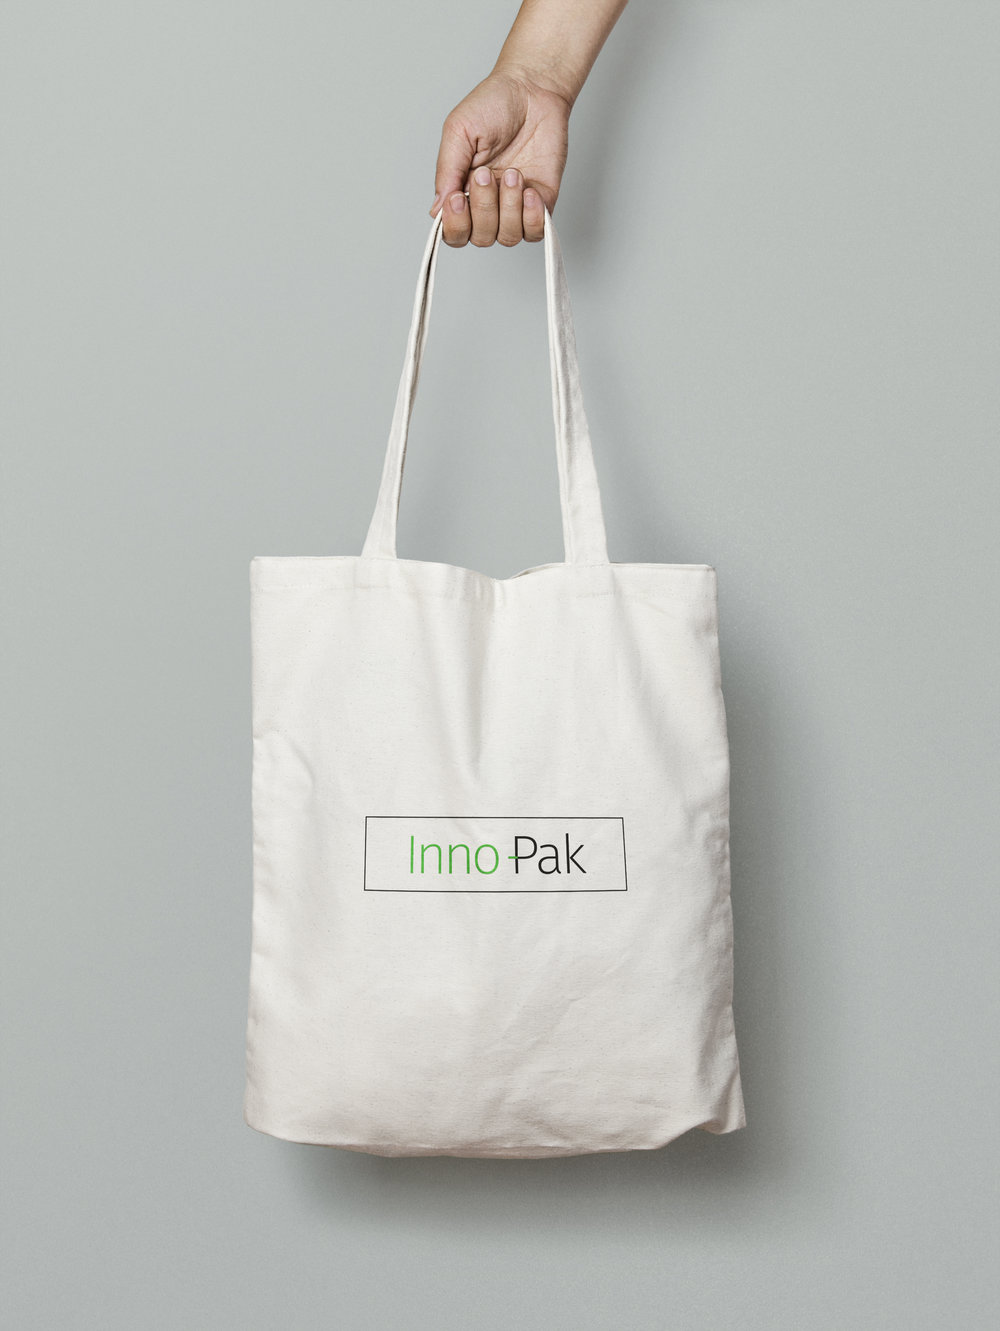 Innopak Canvas Tote Bag MockUp Final.jpg